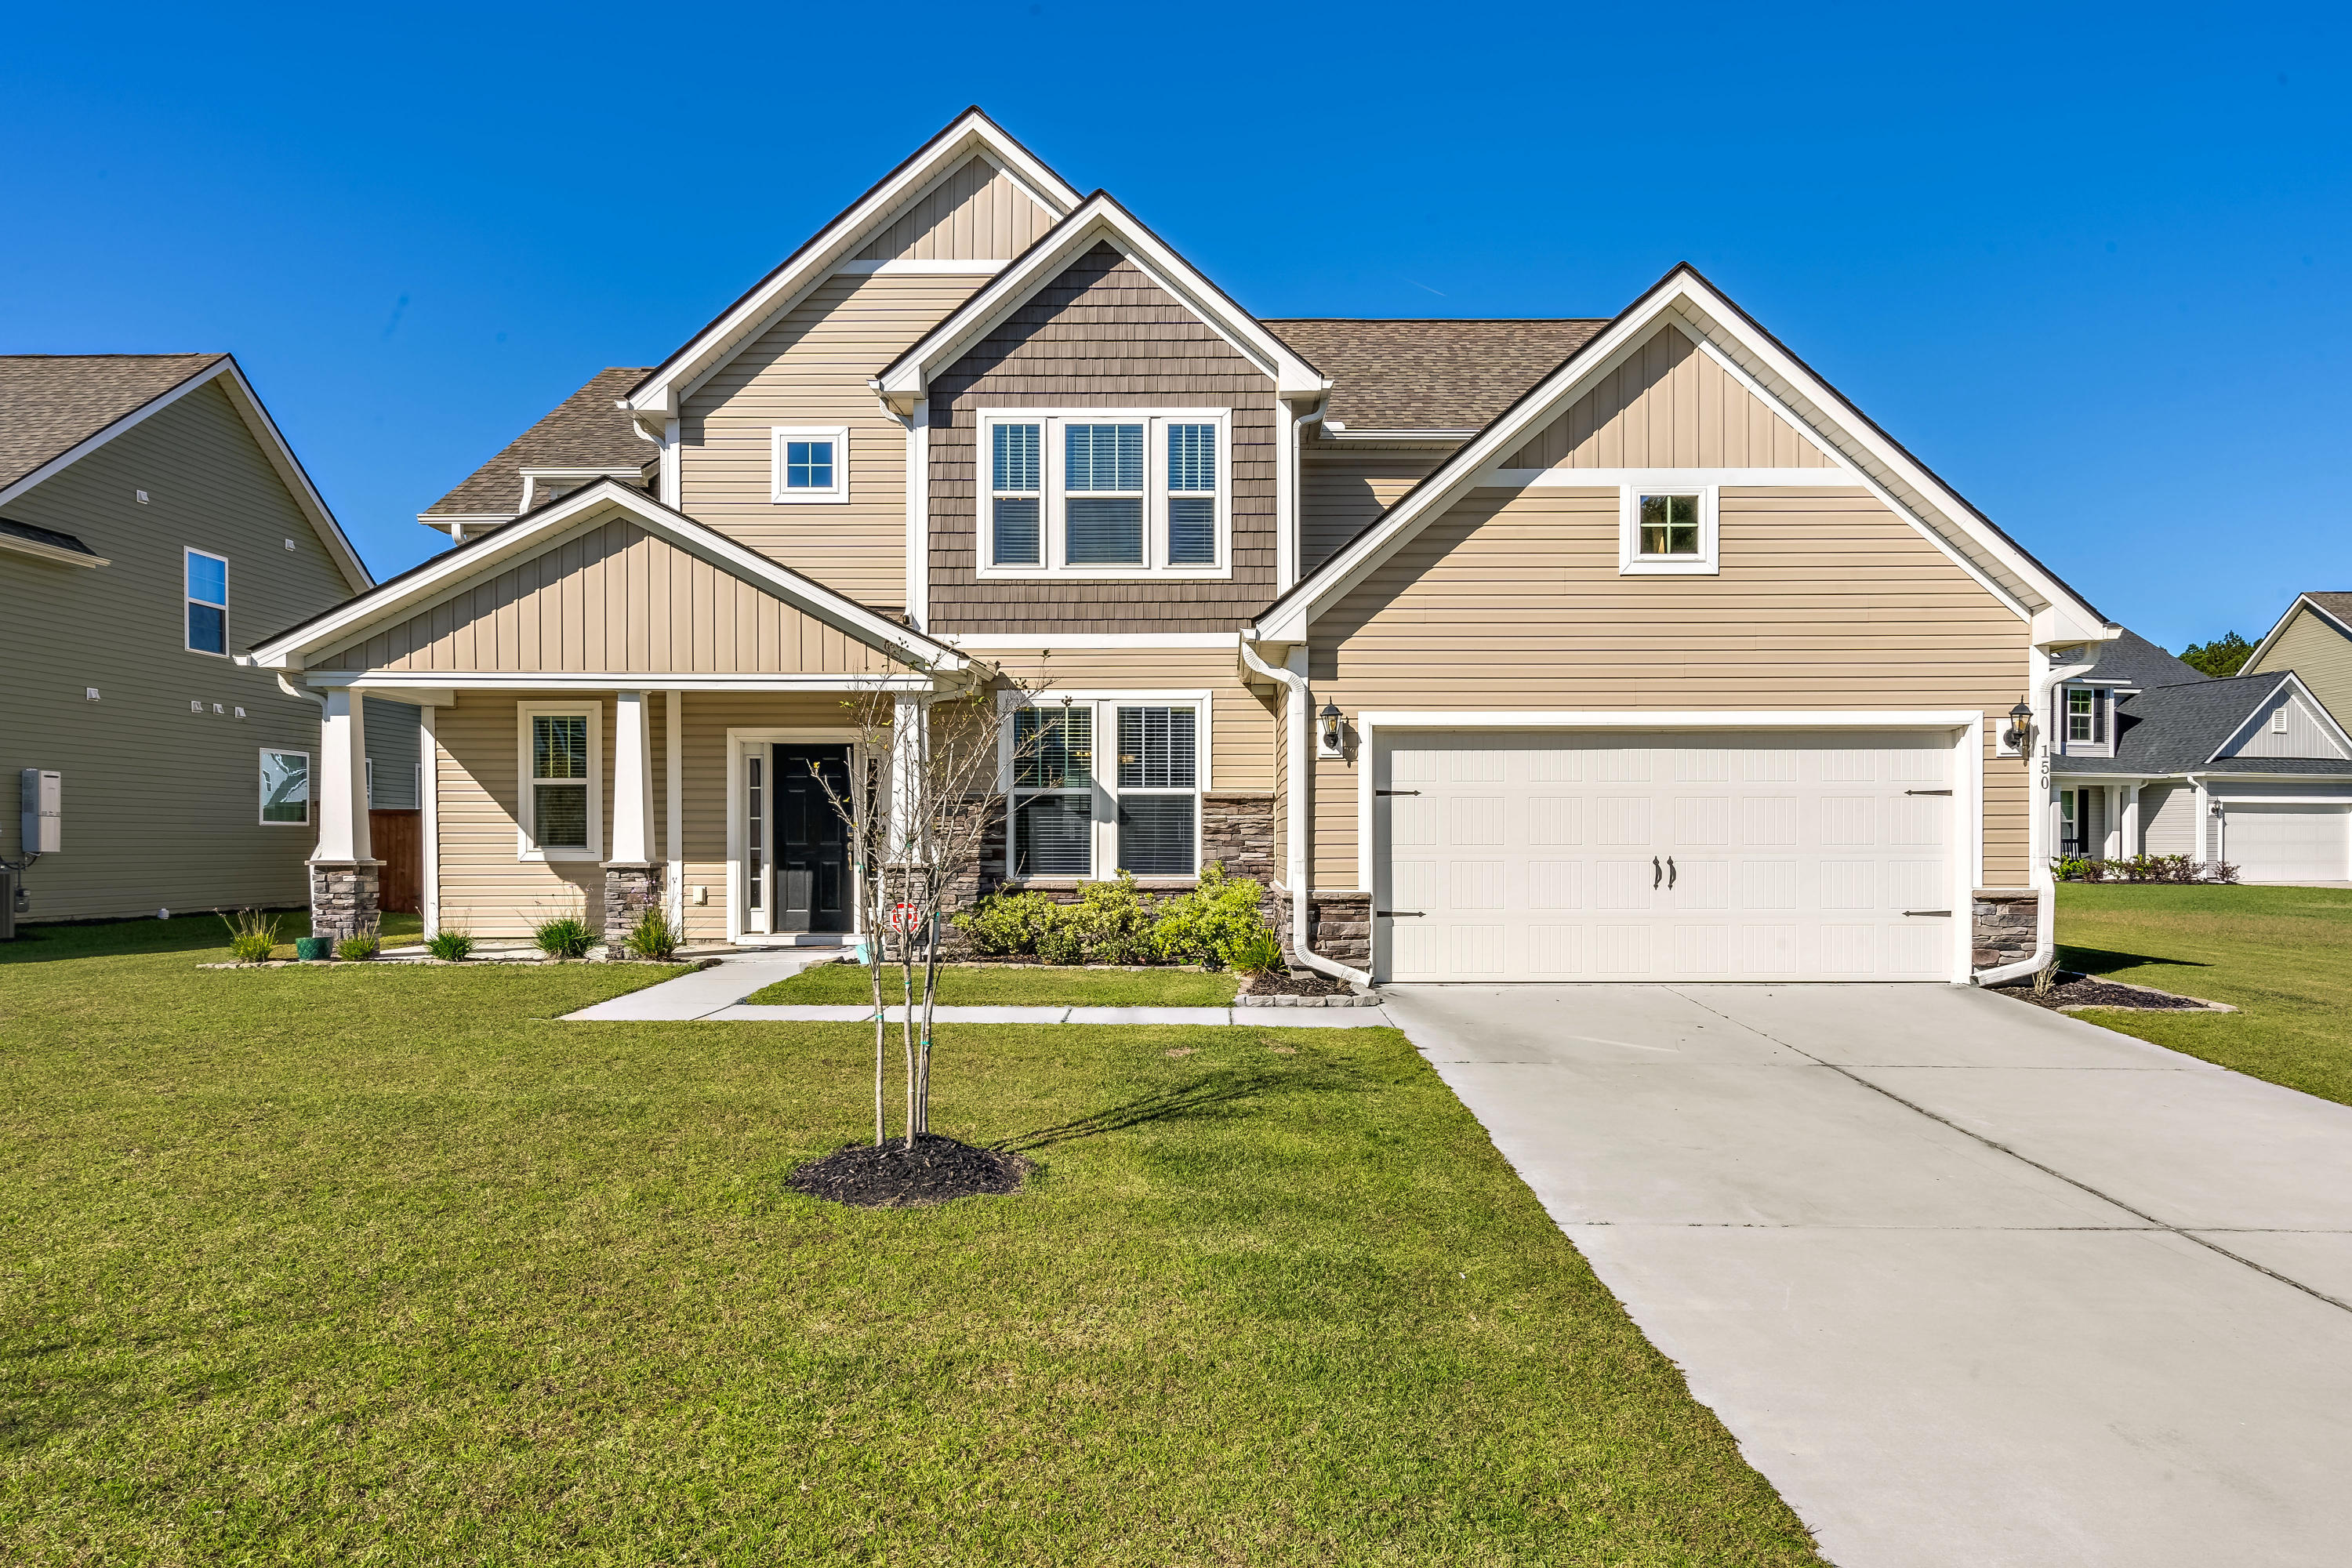 150 Koban Dori Road Summerville, SC 29486